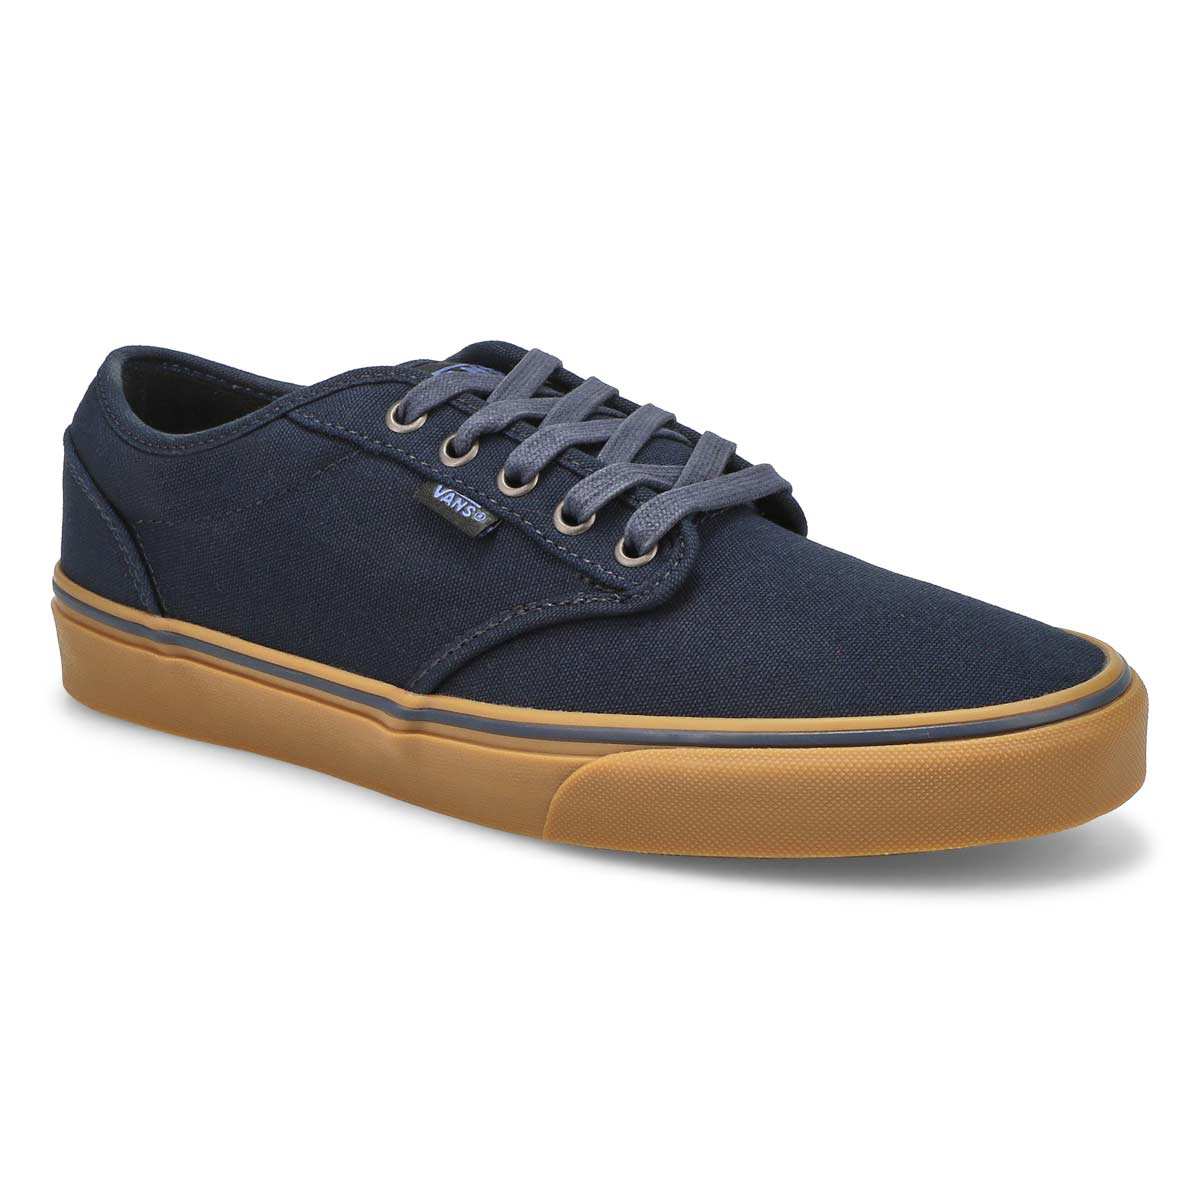 Men's ATWOOD navy canvas lace up sneakers